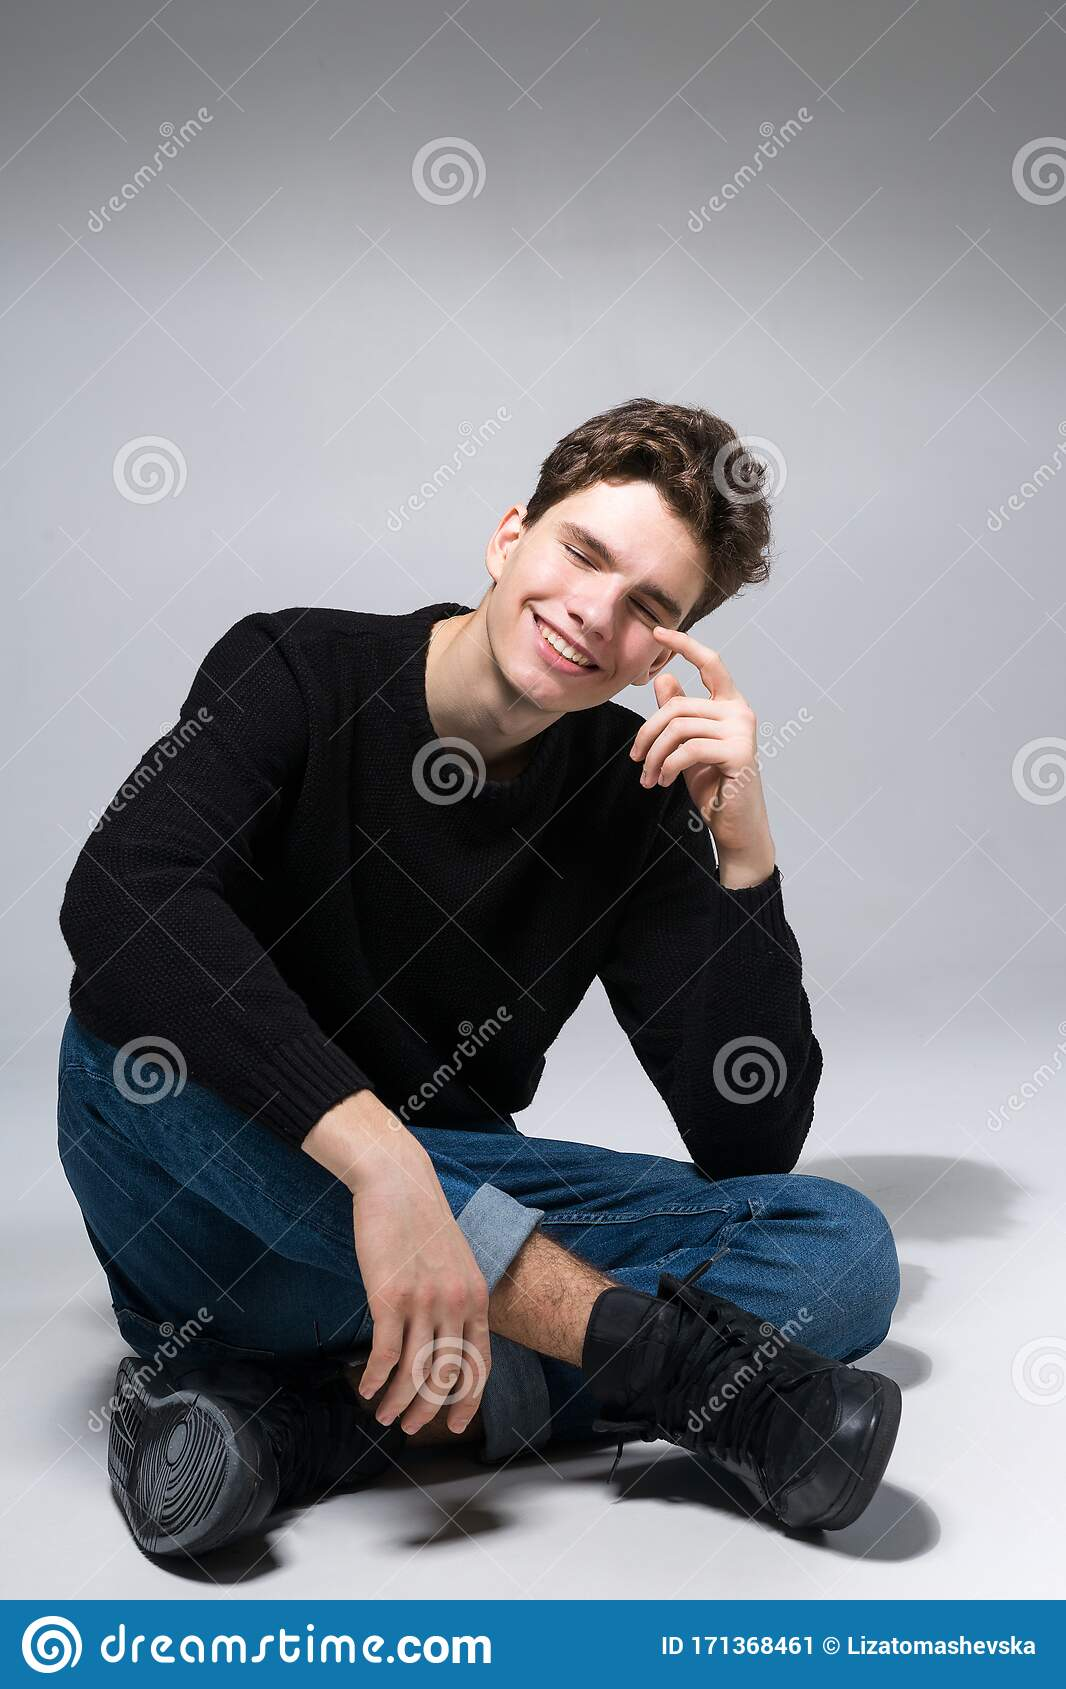 665 Cool Male Model Sitting Floor Photos Free Royalty Free Stock Photos From Dreamstime